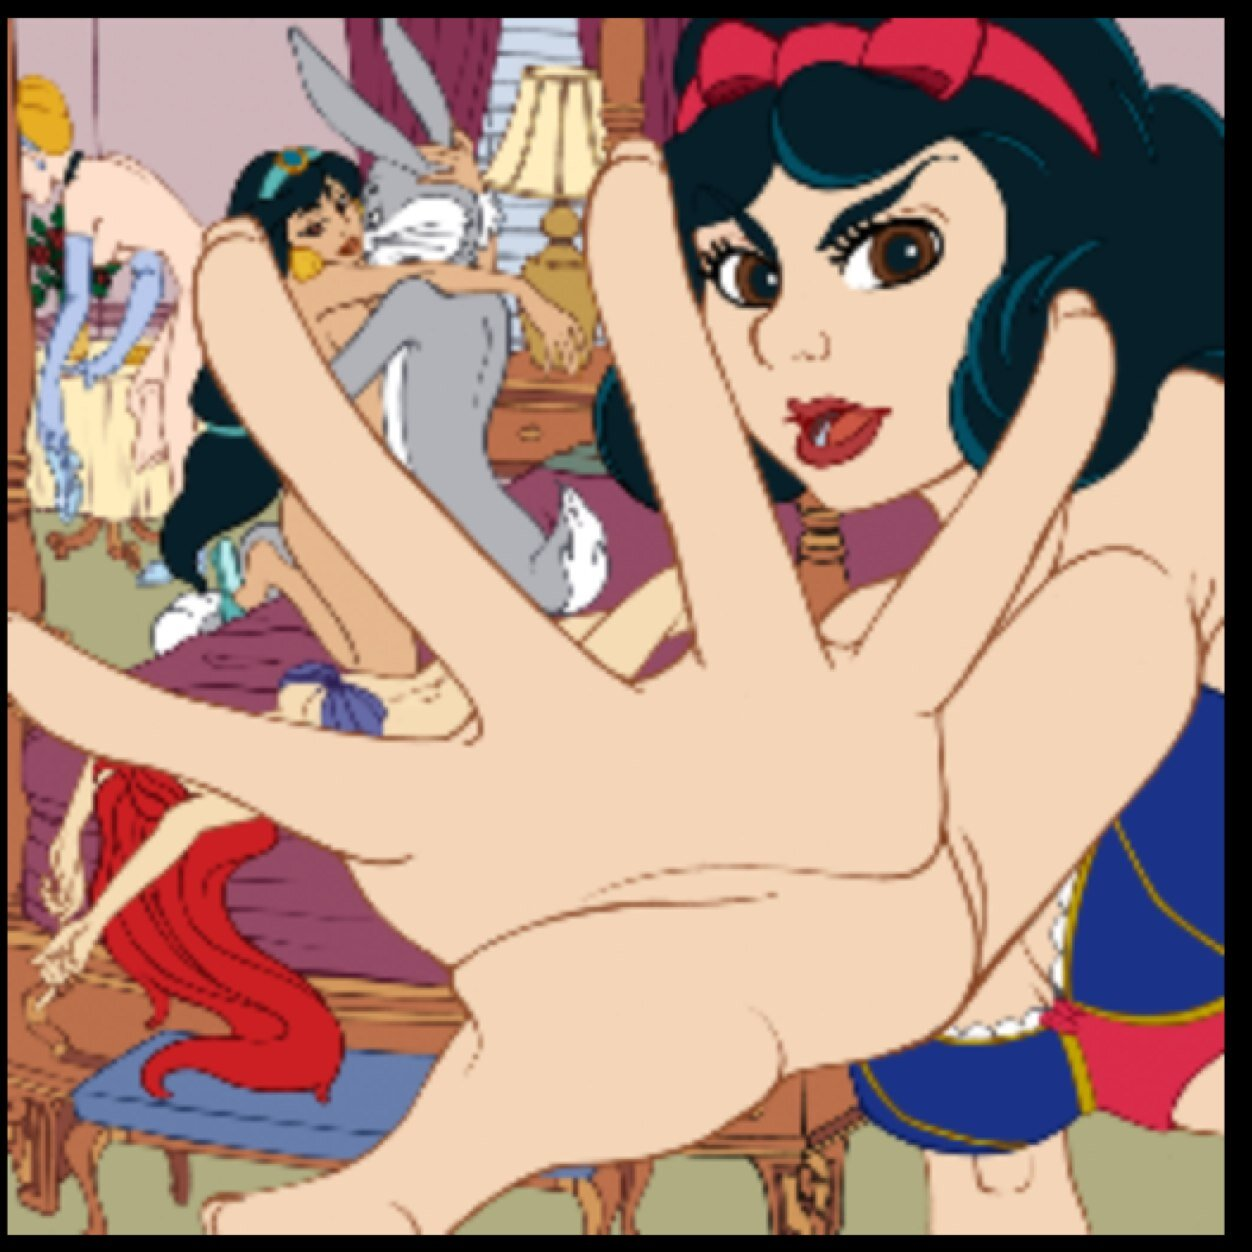 Dirty disney princessprn hentai film